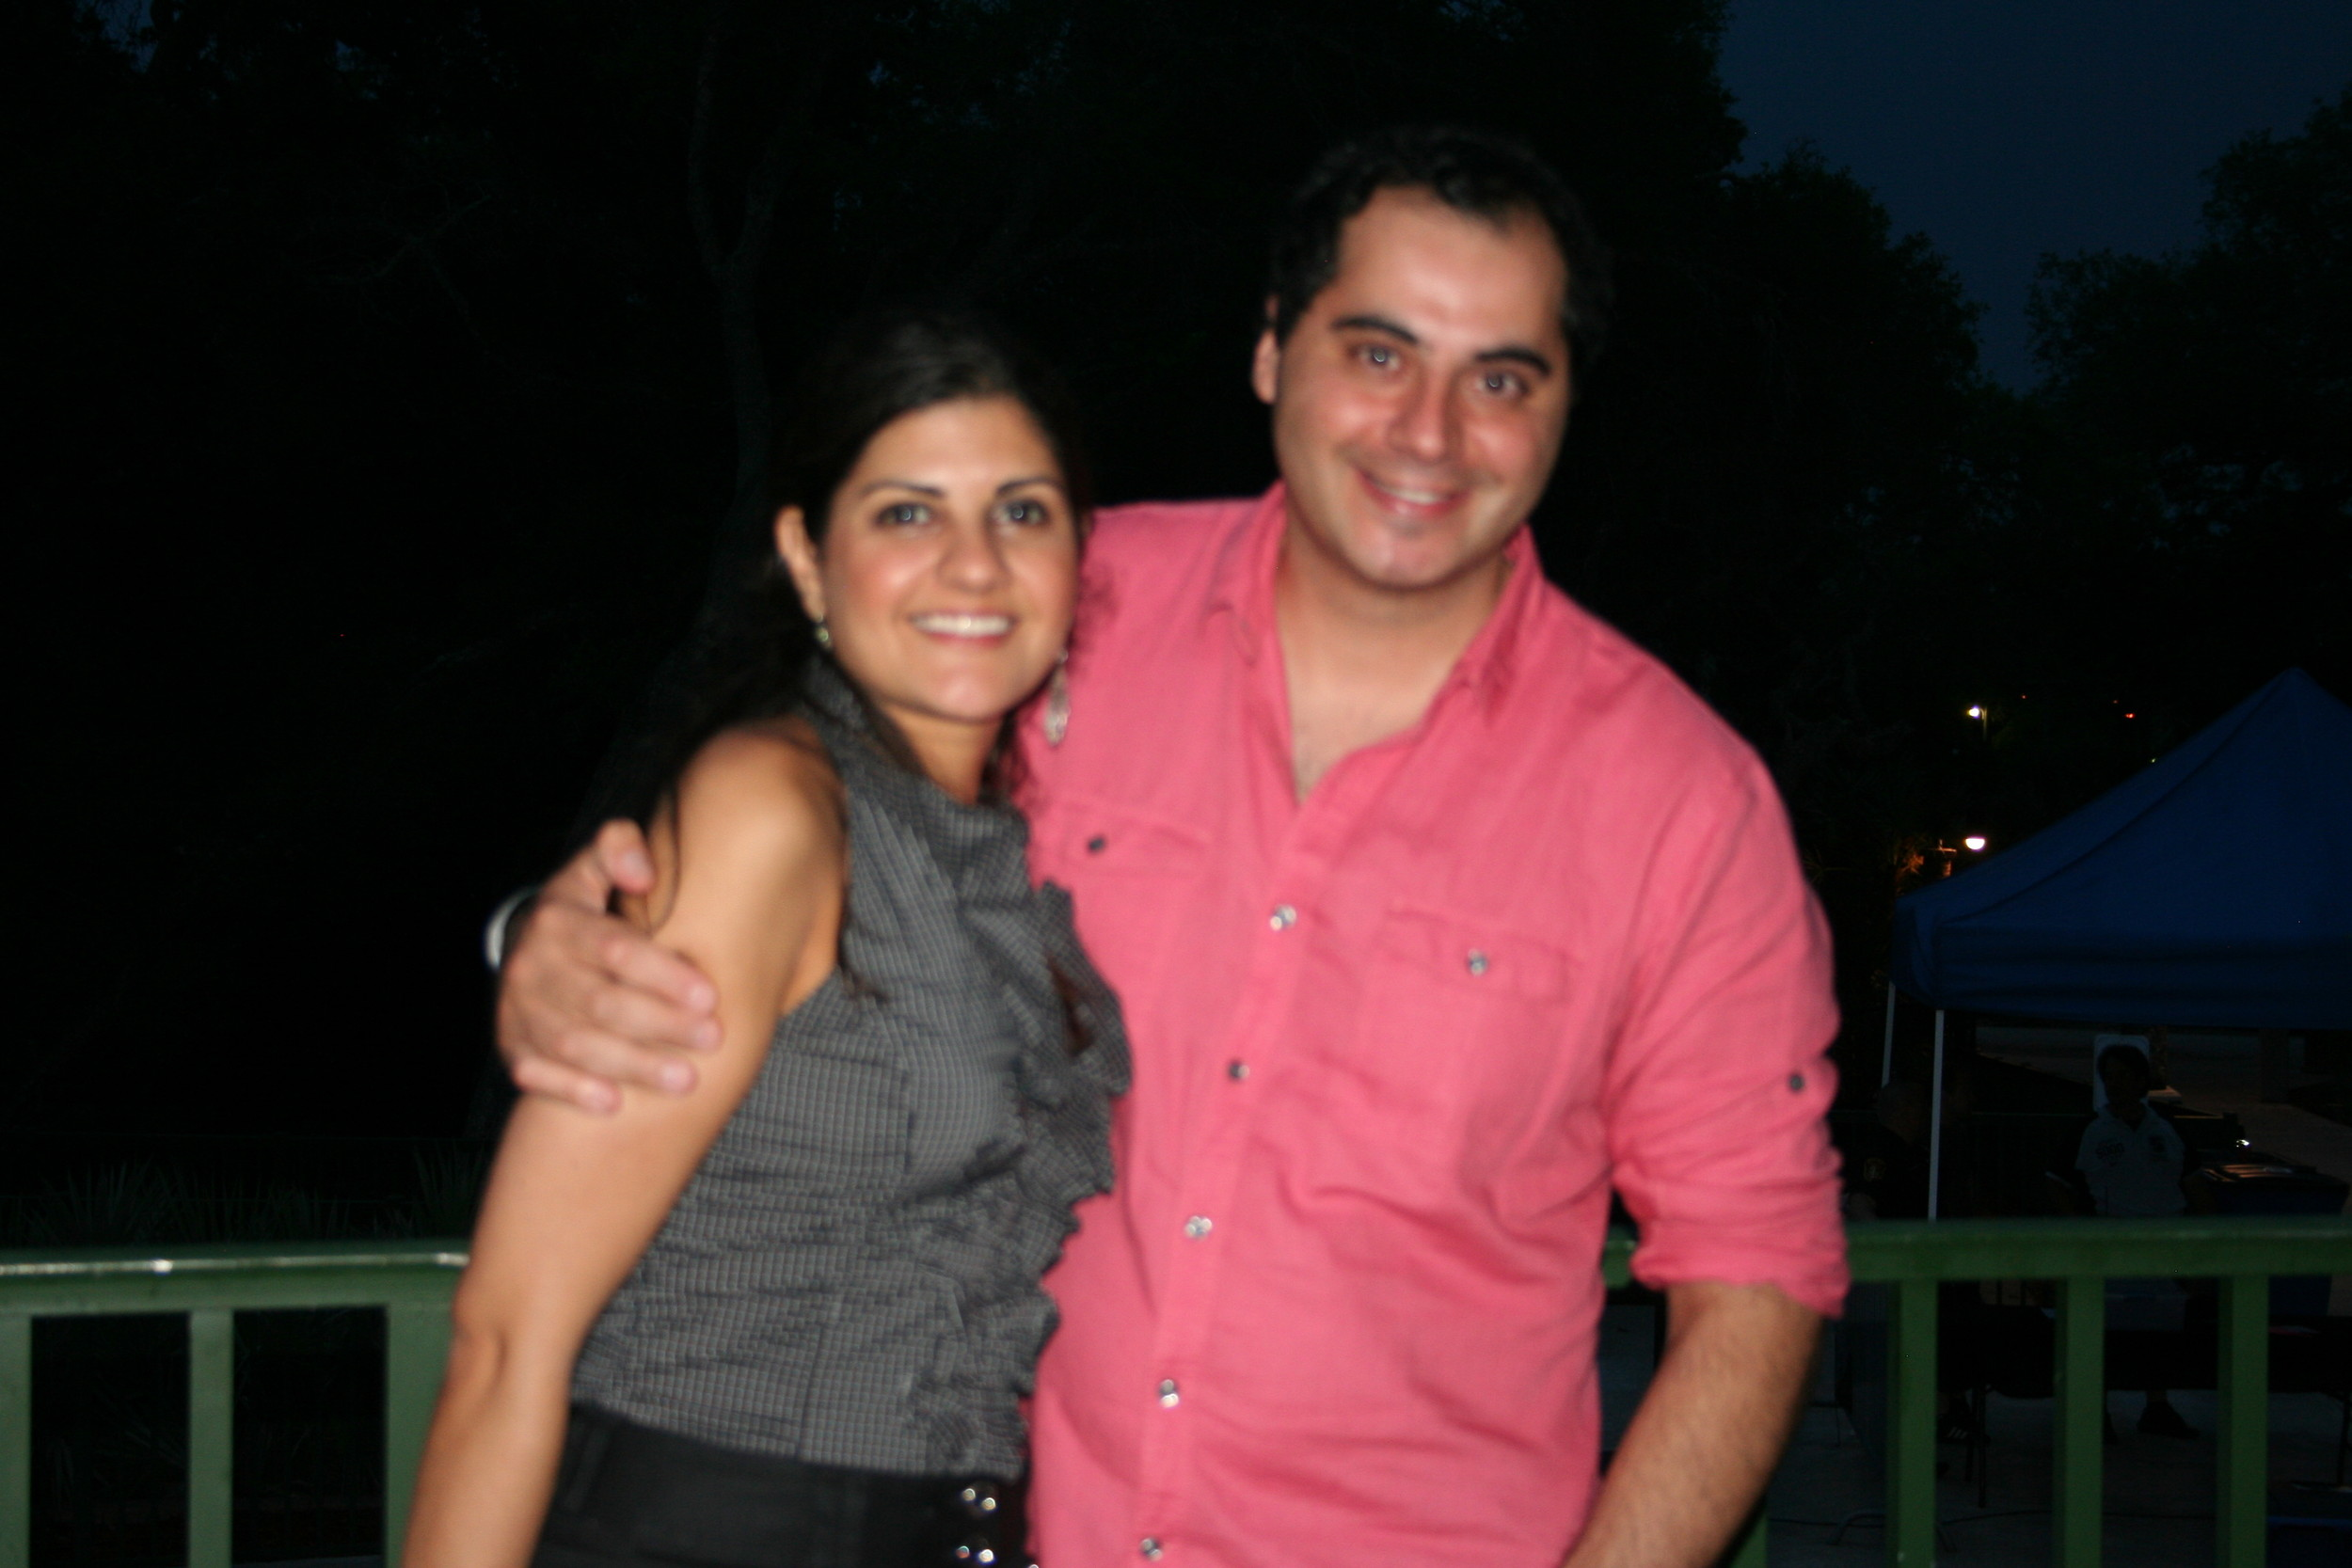 Jennifer Farhat, Mike Marzoug